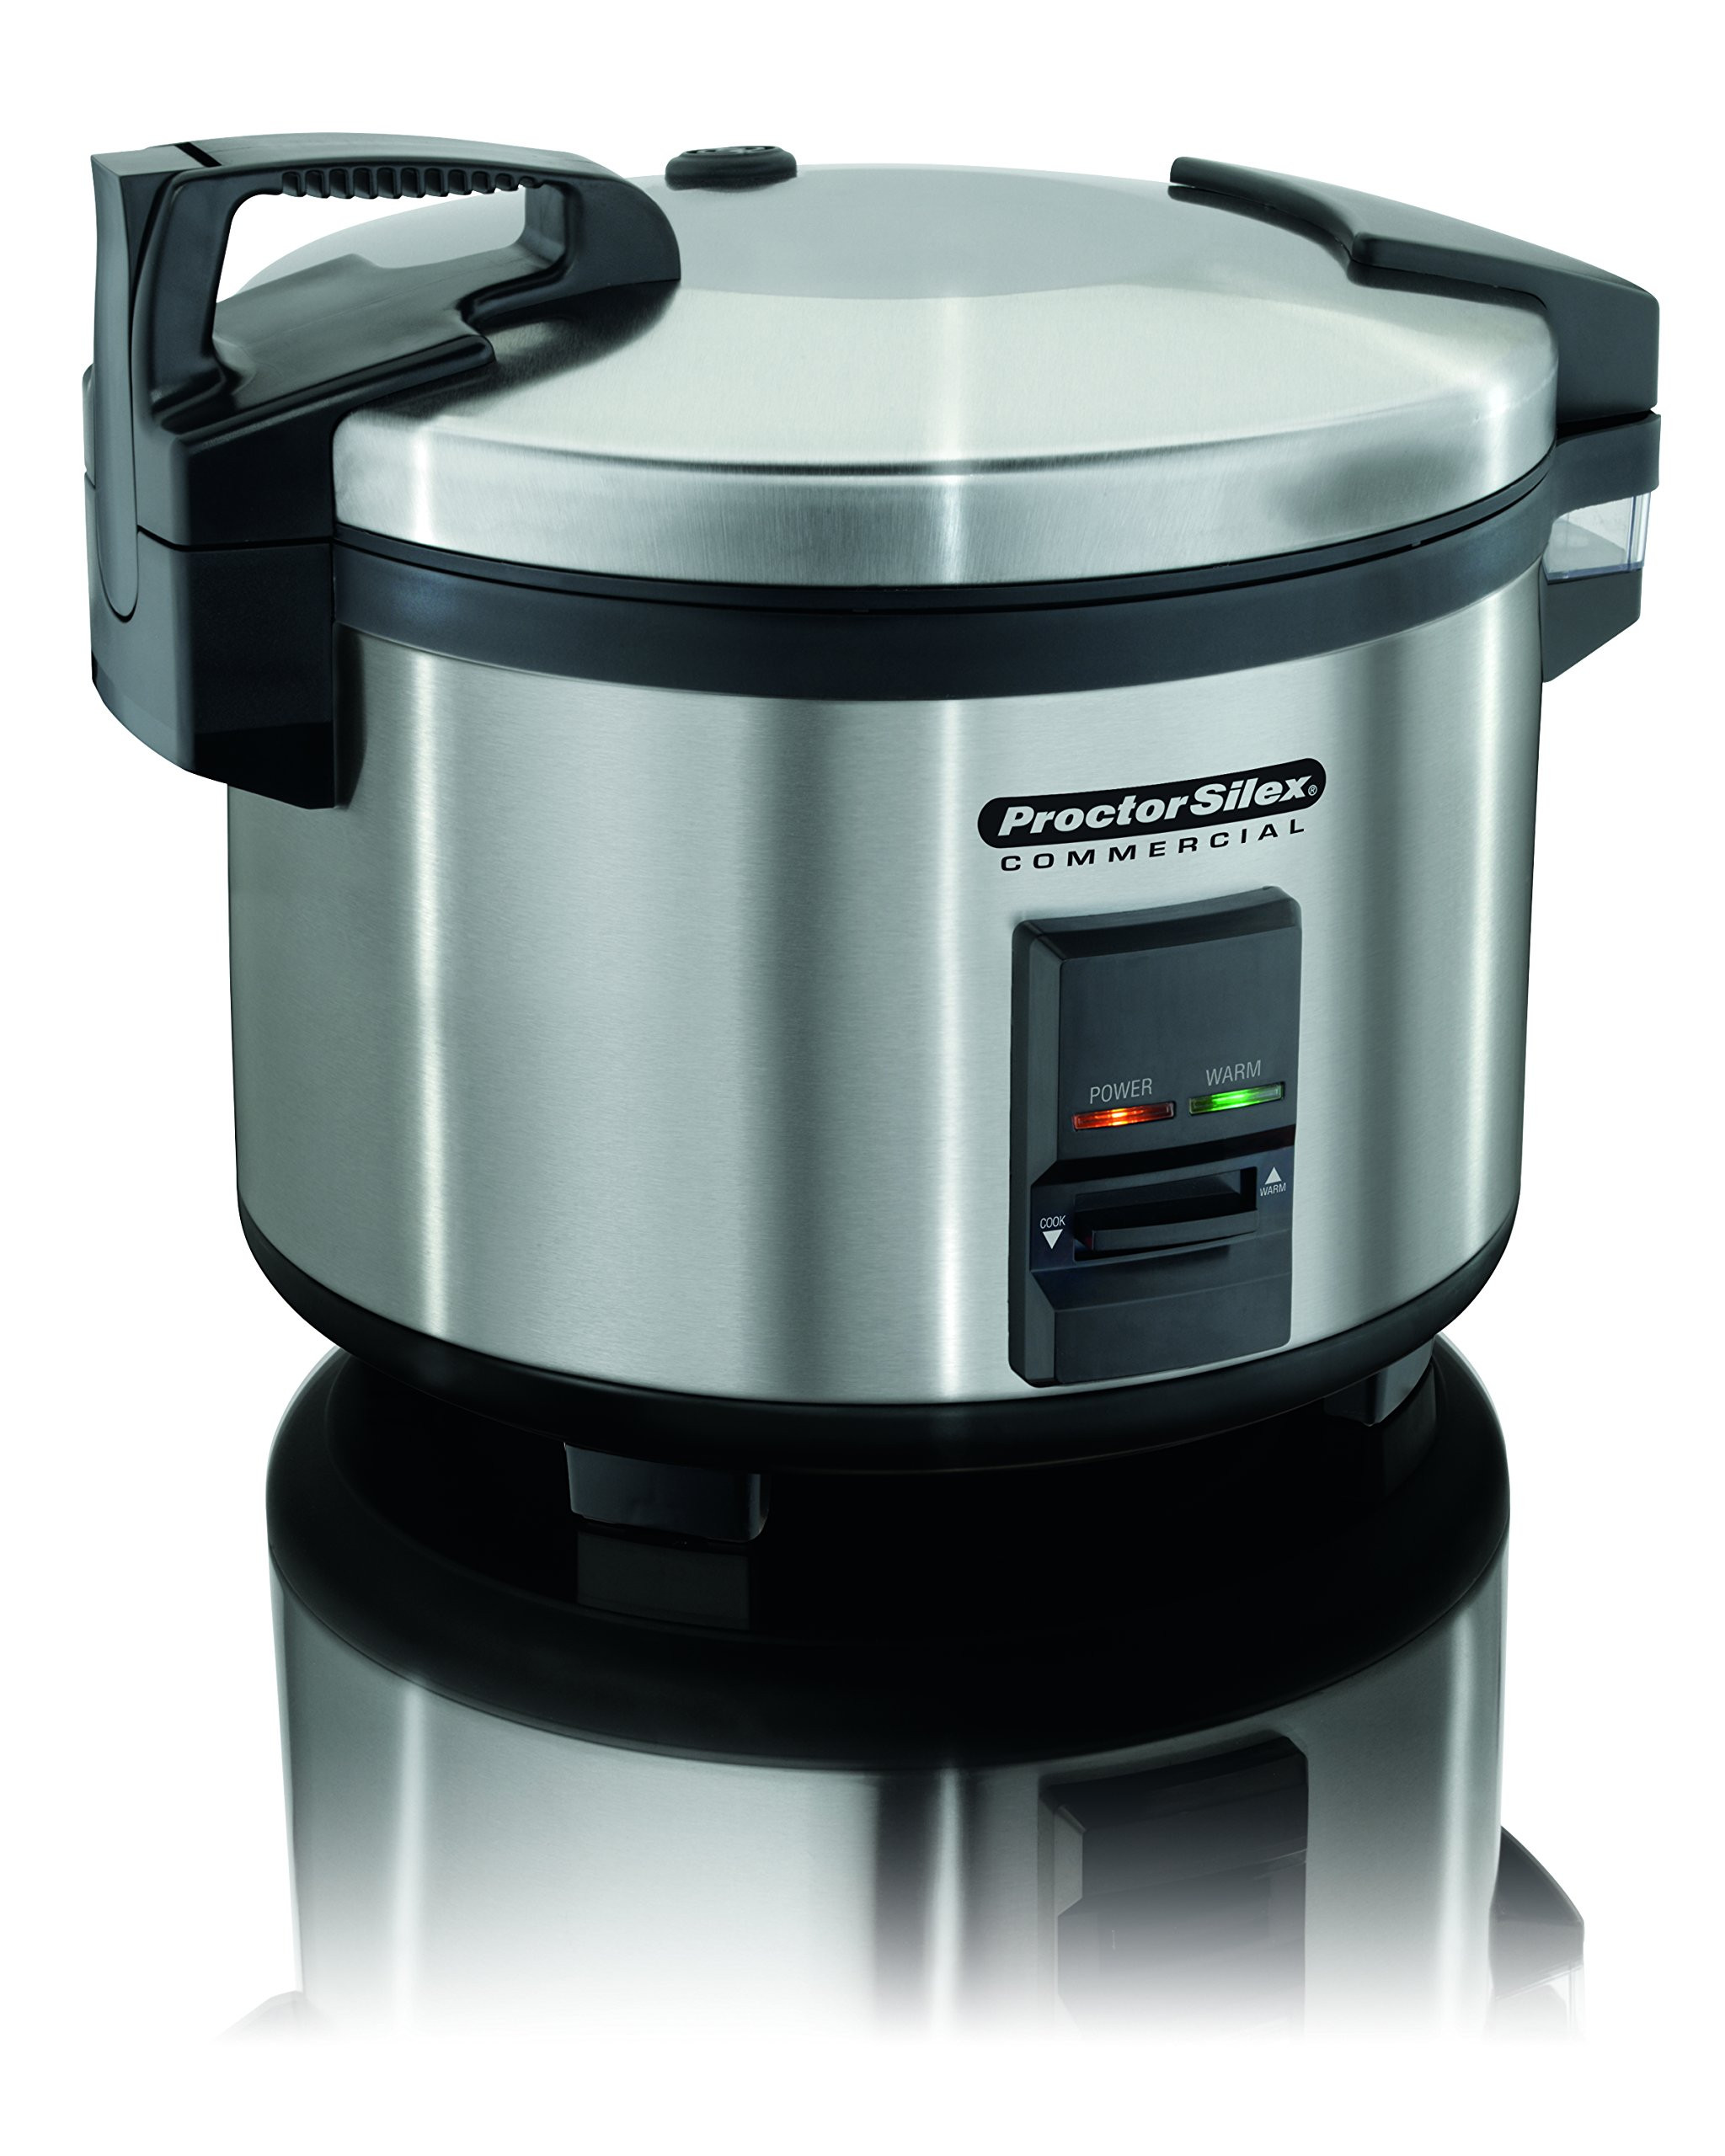 Proctor Silex Commercial 37540 Rice Cooker/Warmer, 40 Cups Cooked Rice, Non-Stick Pot, Hinged Lid, Stainless Steel Housing